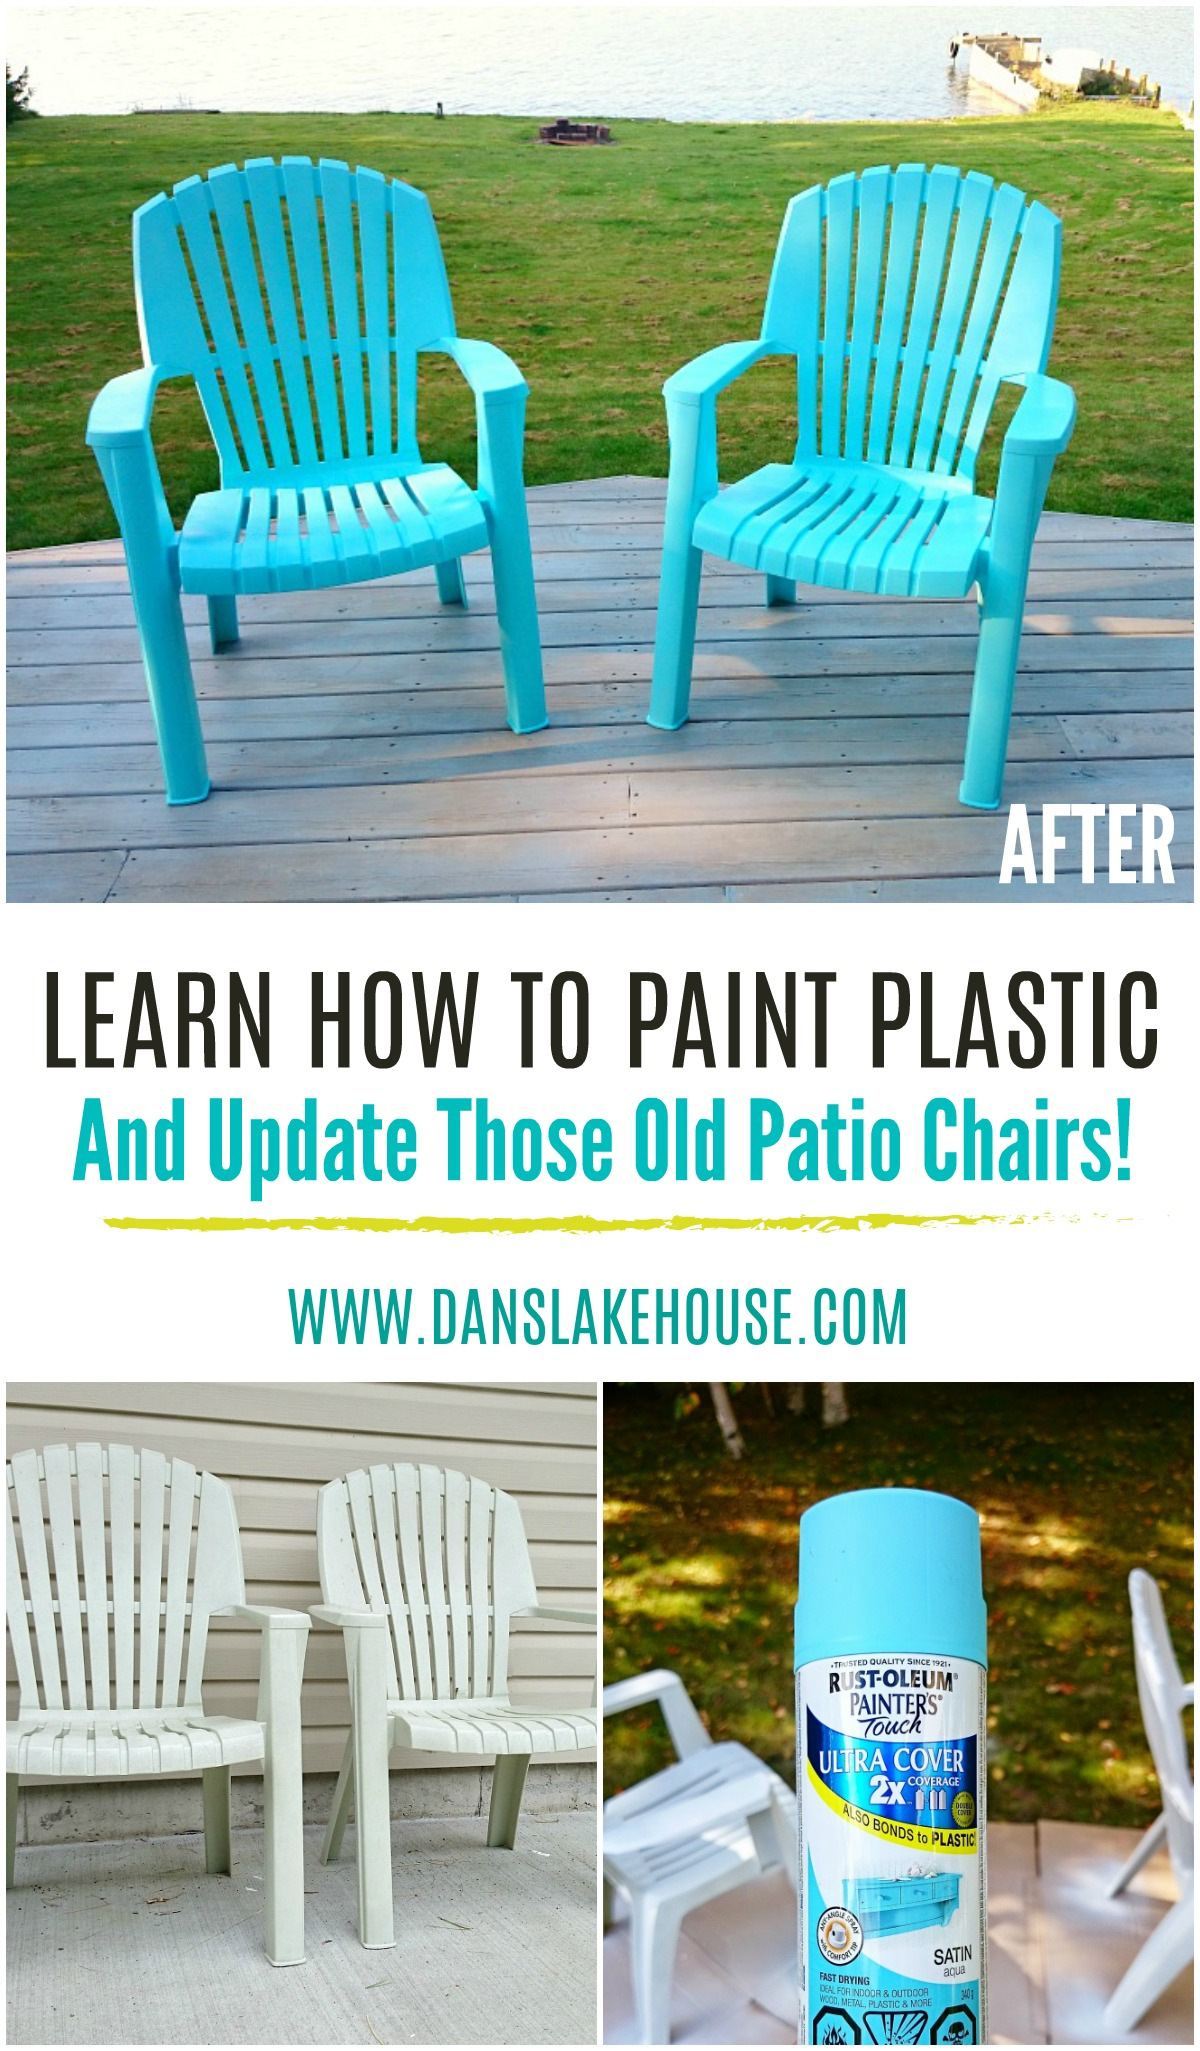 Learn How to Paint Plastic and Update Those Old Patio Chairs! How to Spray Paint Plastic Lawn Furniture is a Great Budget-Friendly Patio Idea. Cheap and Easy Outdoor Projects and a Great Spray Paint Project for Summer. #savingmoney #spraypaint #outdoorprojects #patiofurniture #furnituremakeover